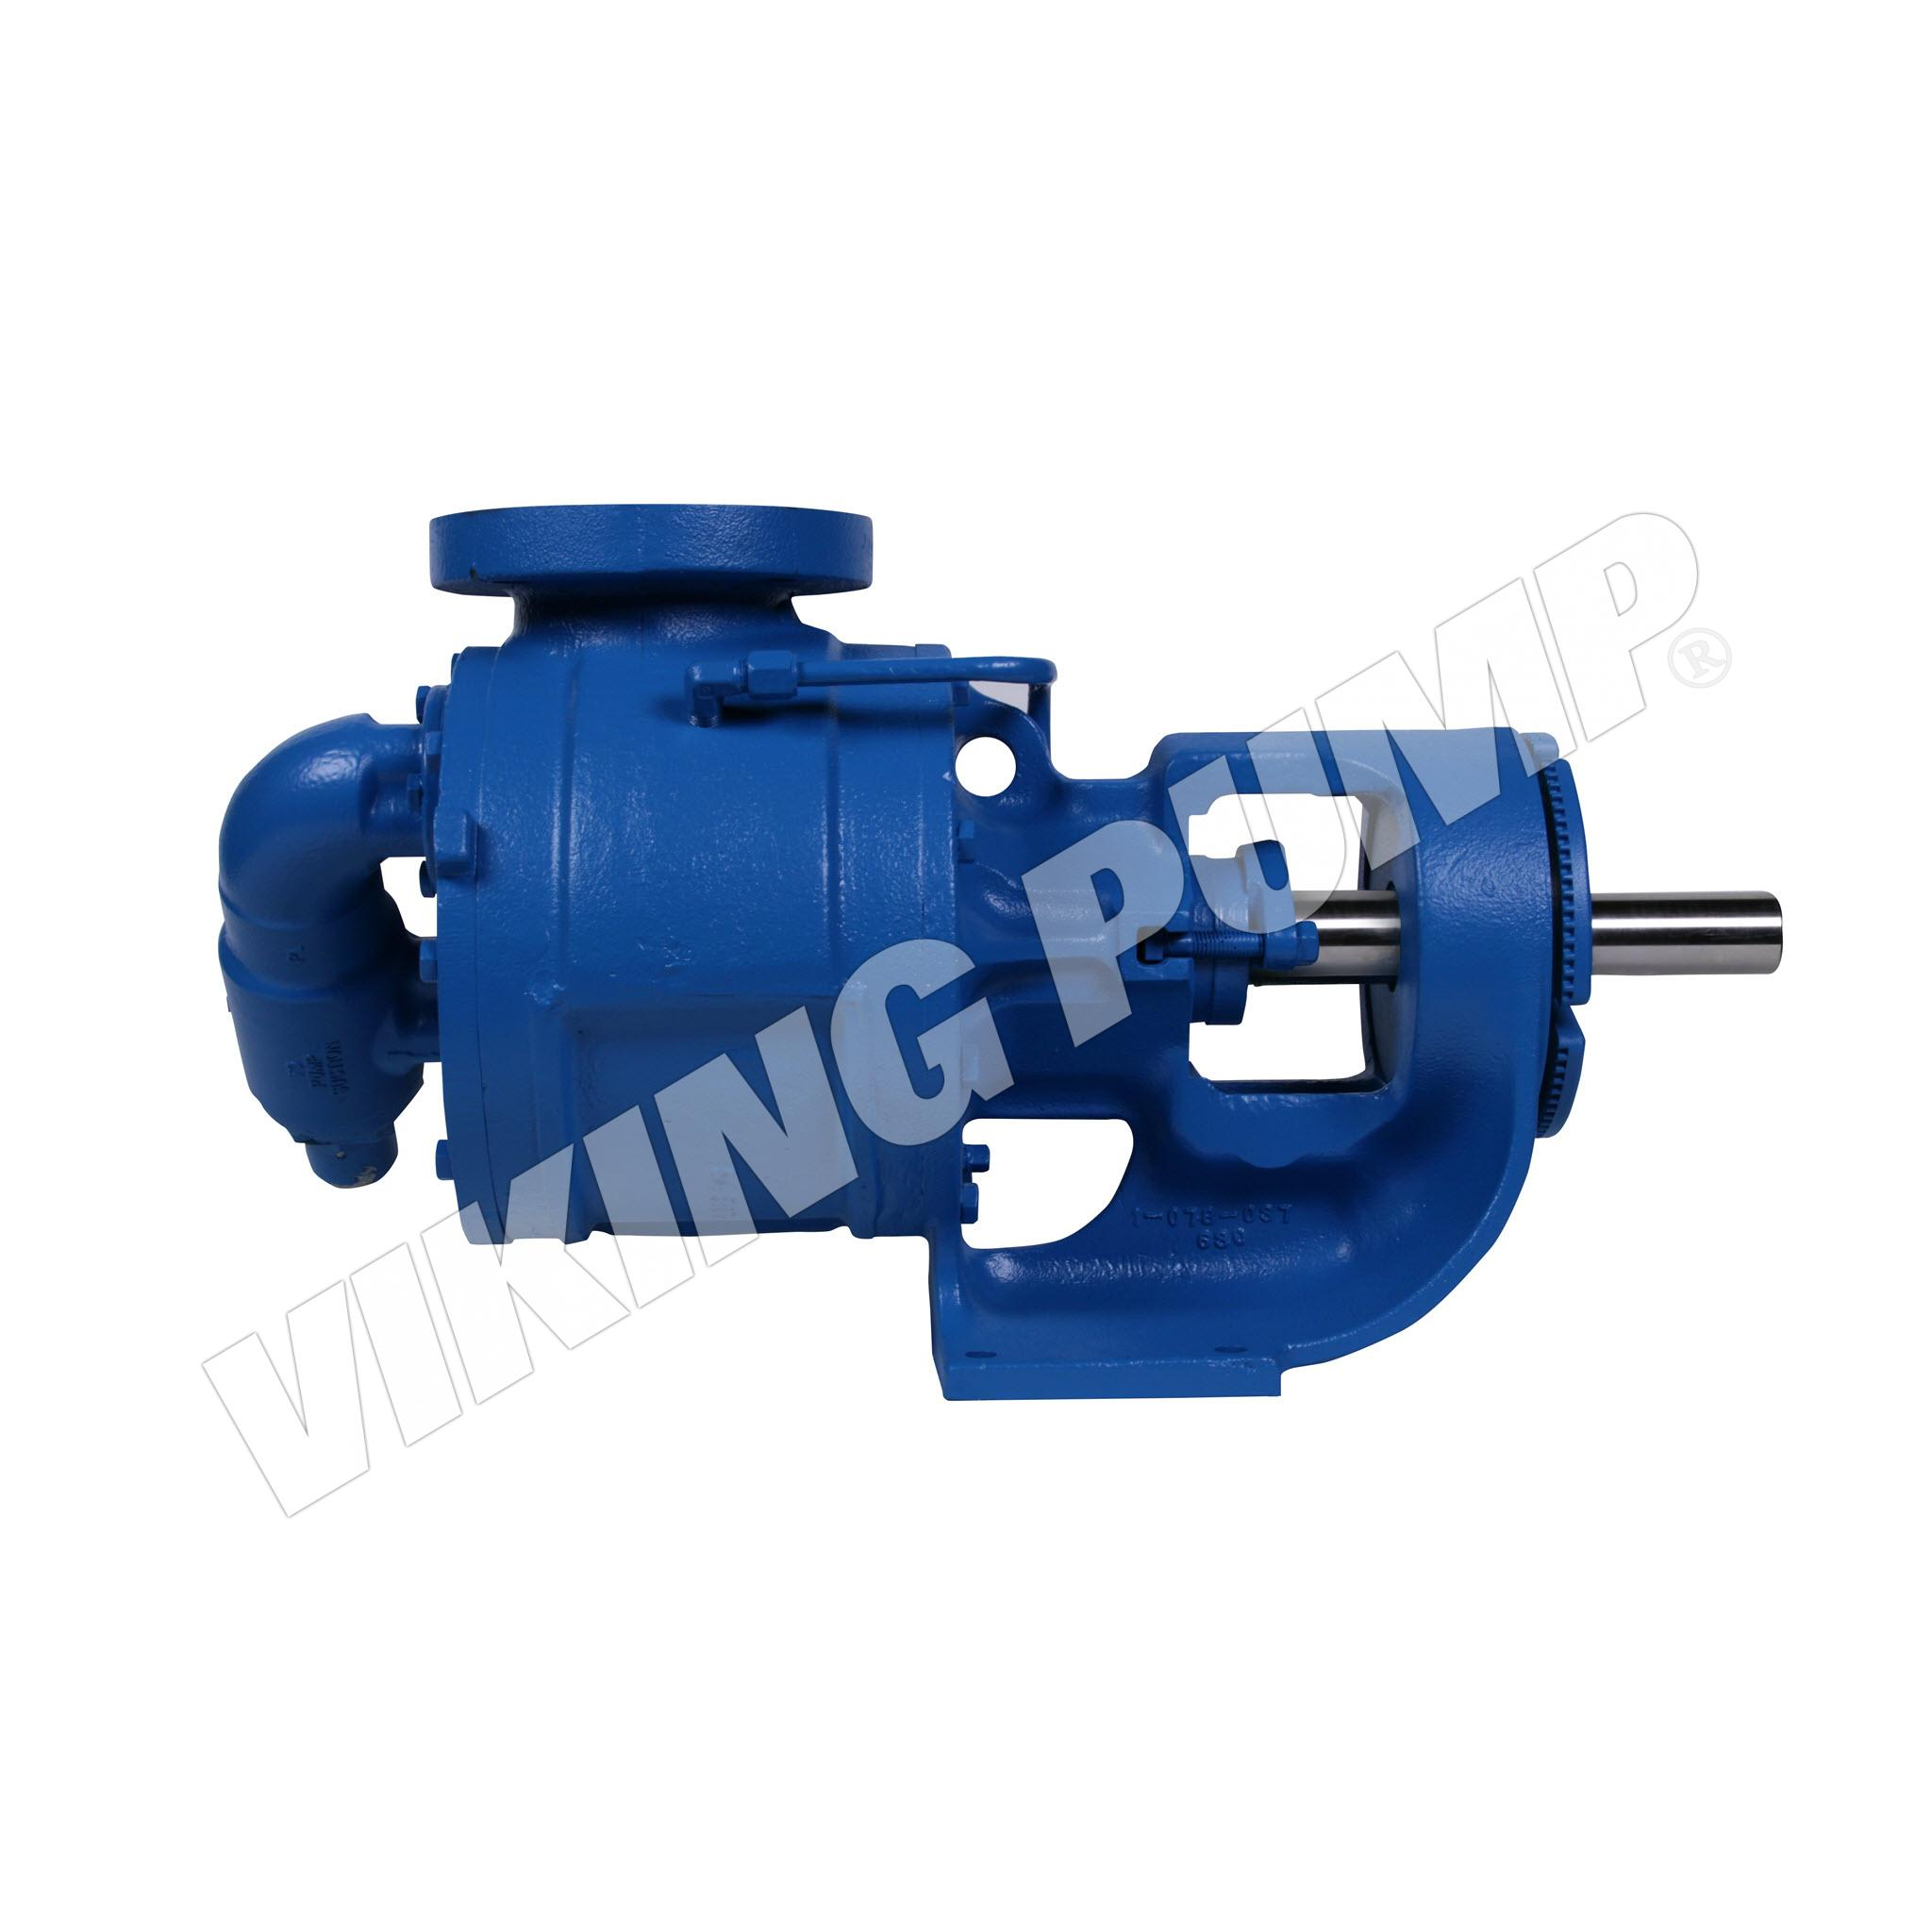 Model LS4127A, Foot Mounted, Mechanical Seal, Relief Valve Pump